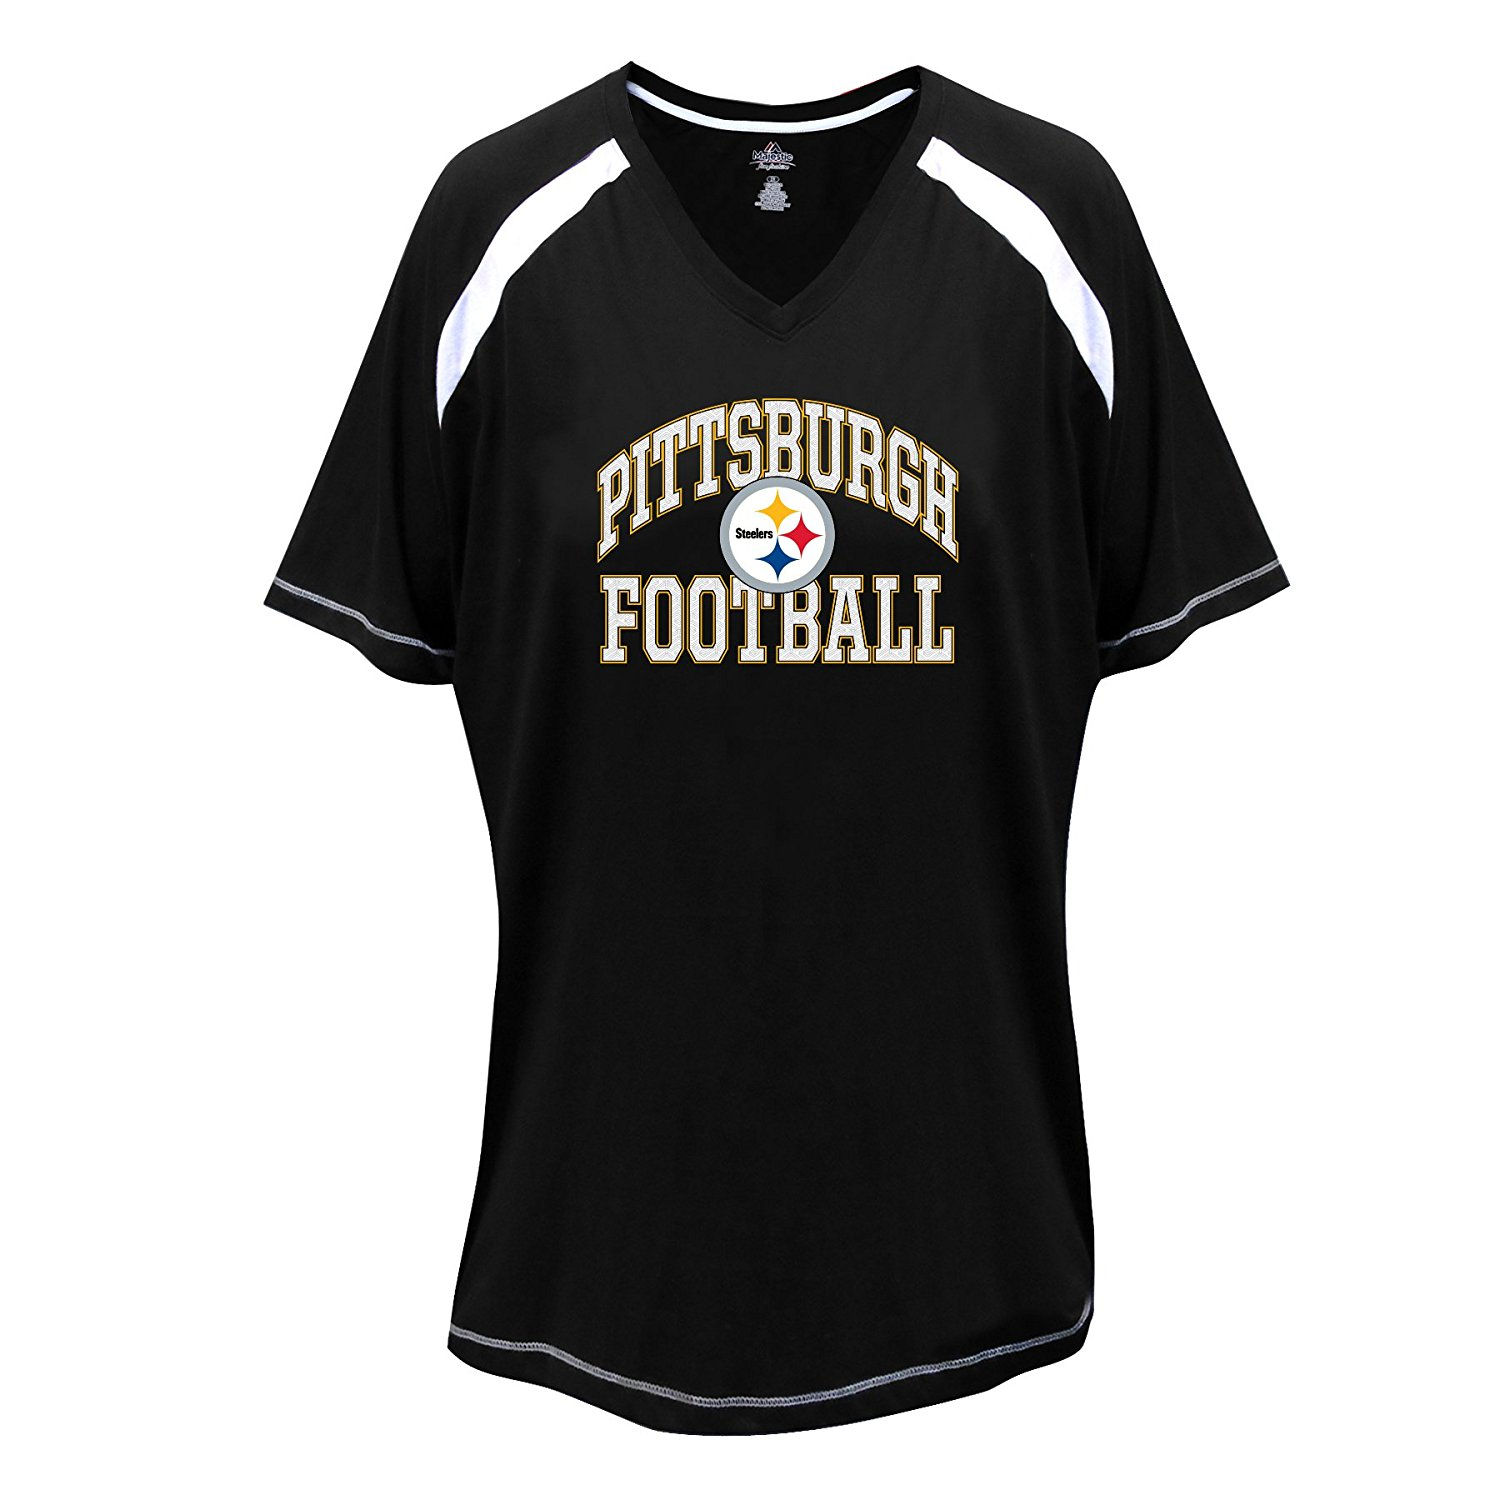 a6b801772 ... Women s T-Shirts. NFL Pittsburgh Steelers Short Sleeve Raglan Tee